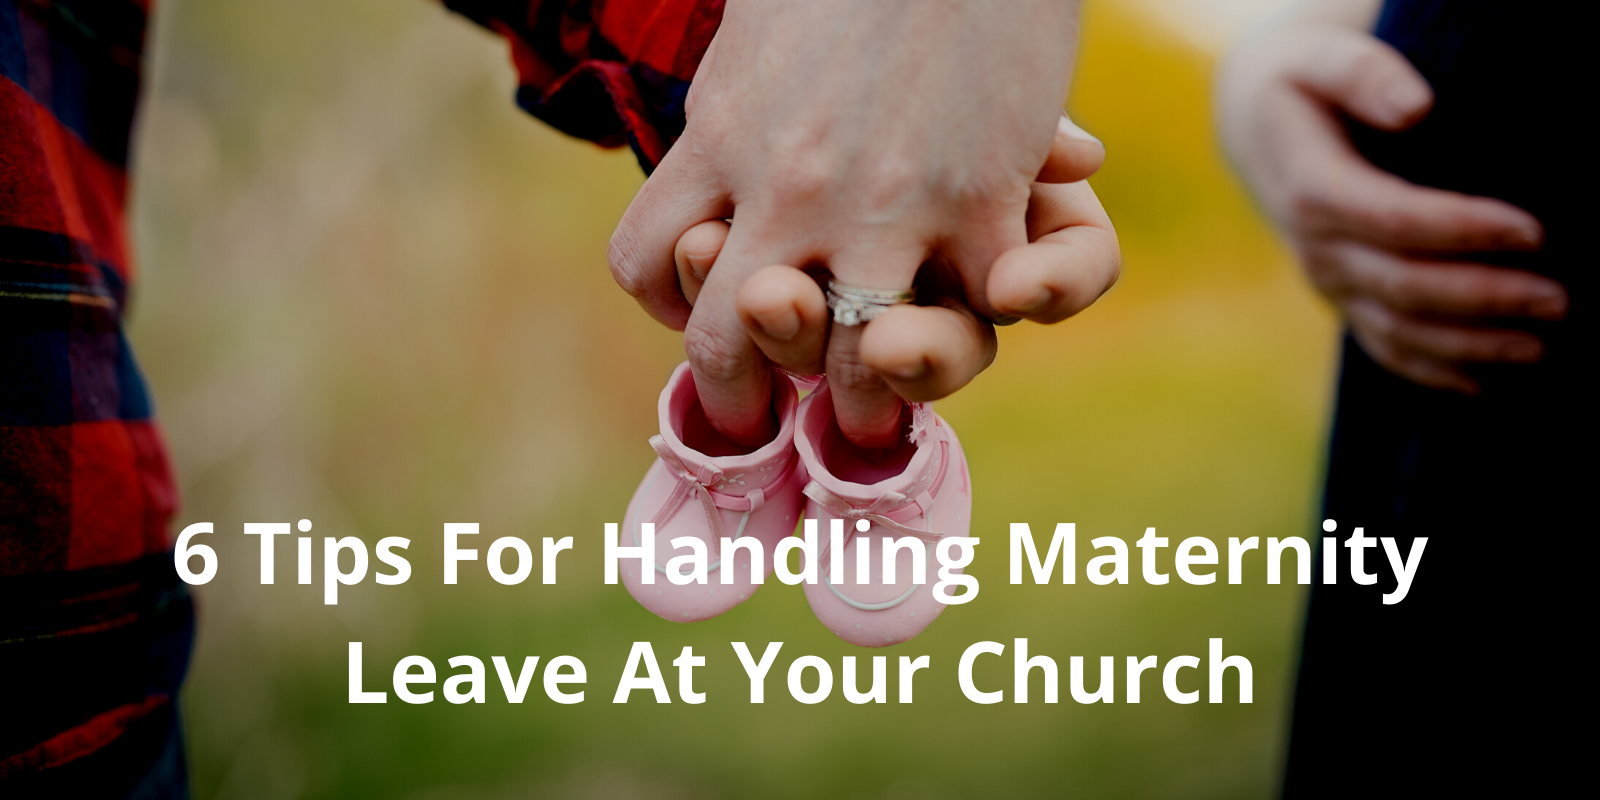 How to handle maternity leave at church